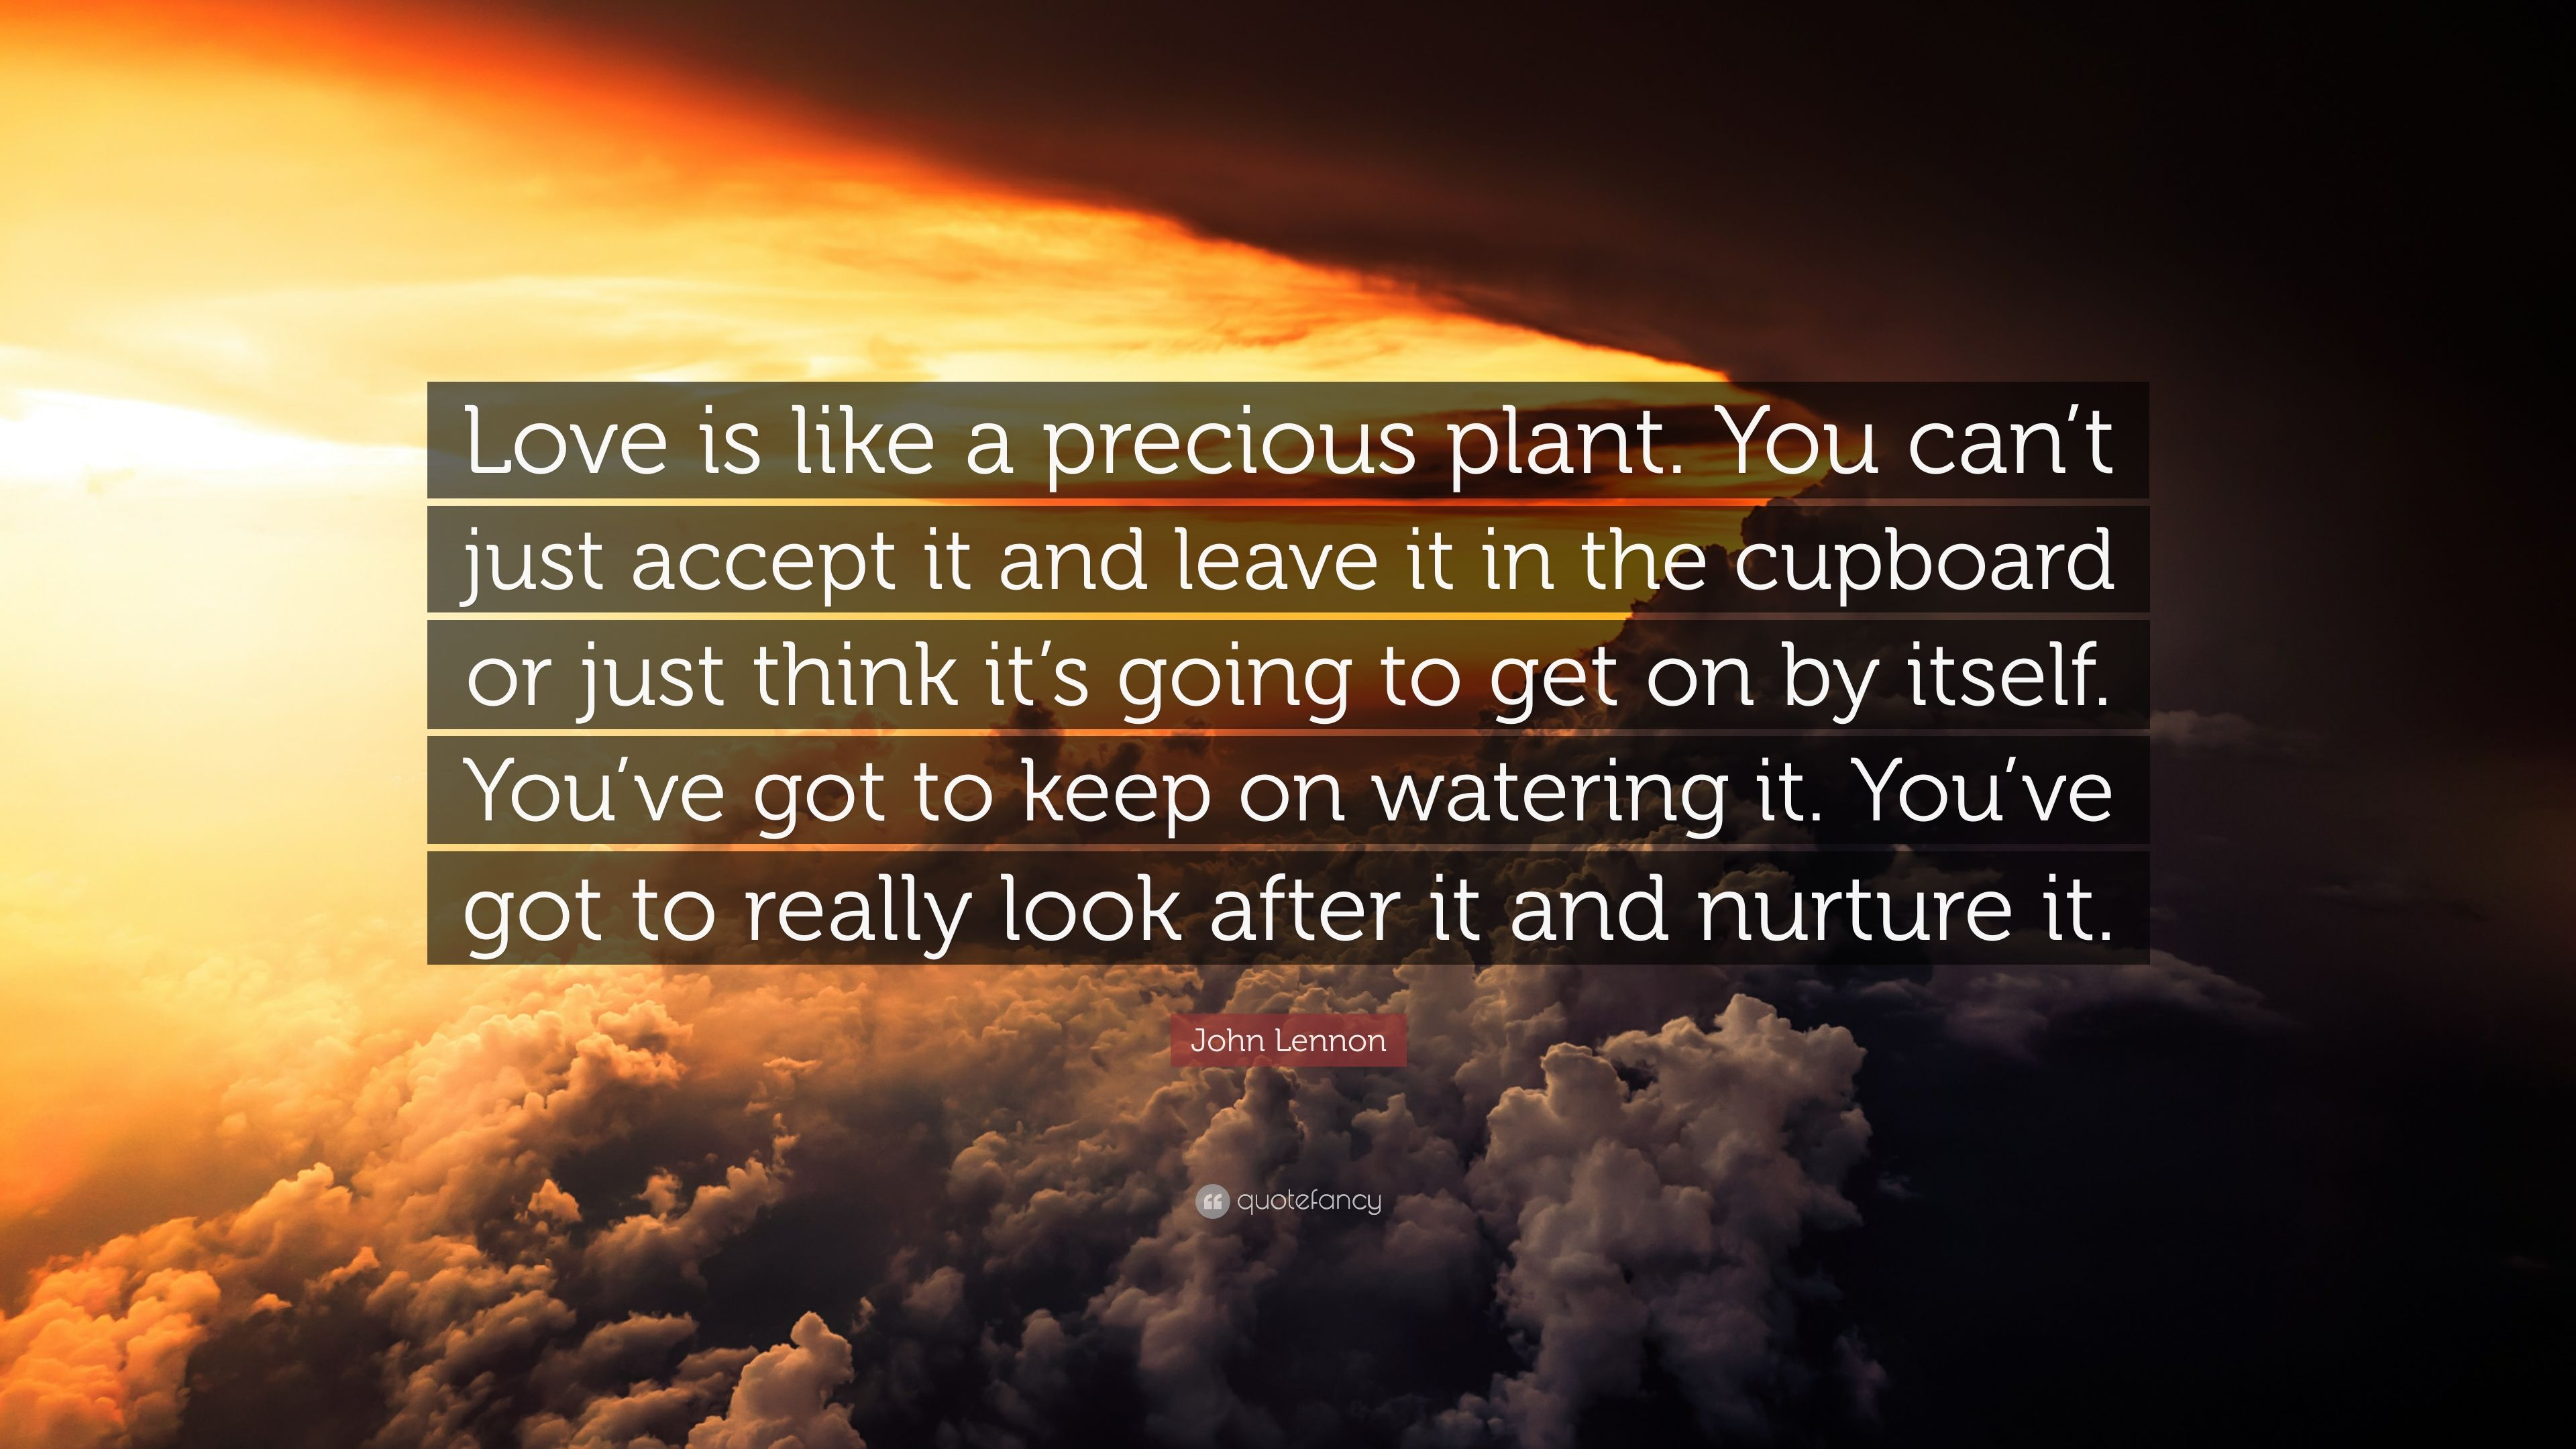 John Lennon Quote Love Is Like A Precious Plant You Cant Just